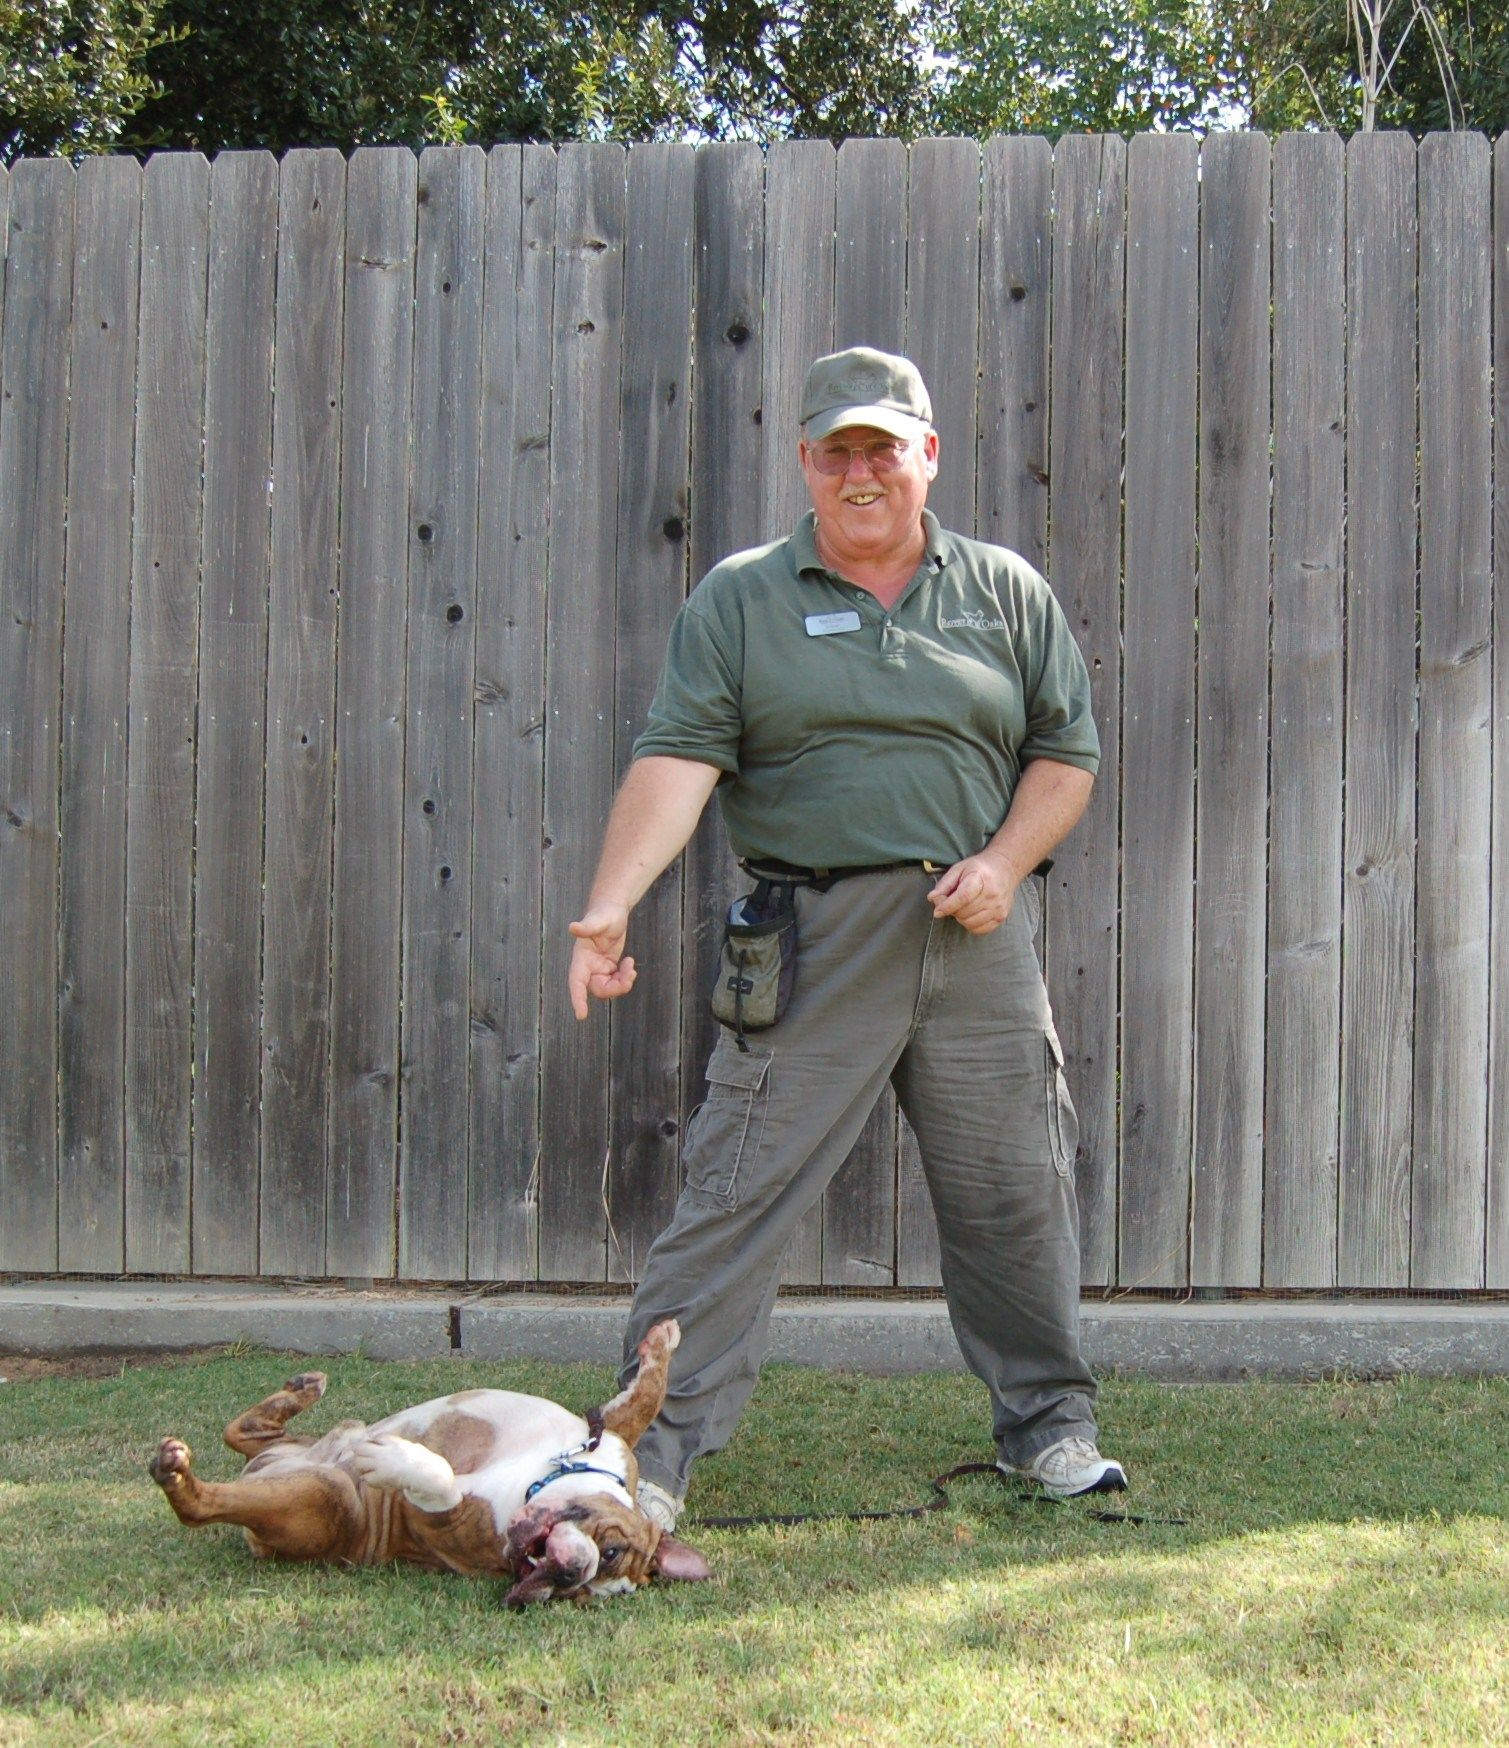 17 Best images about Dog Training on Pinterest